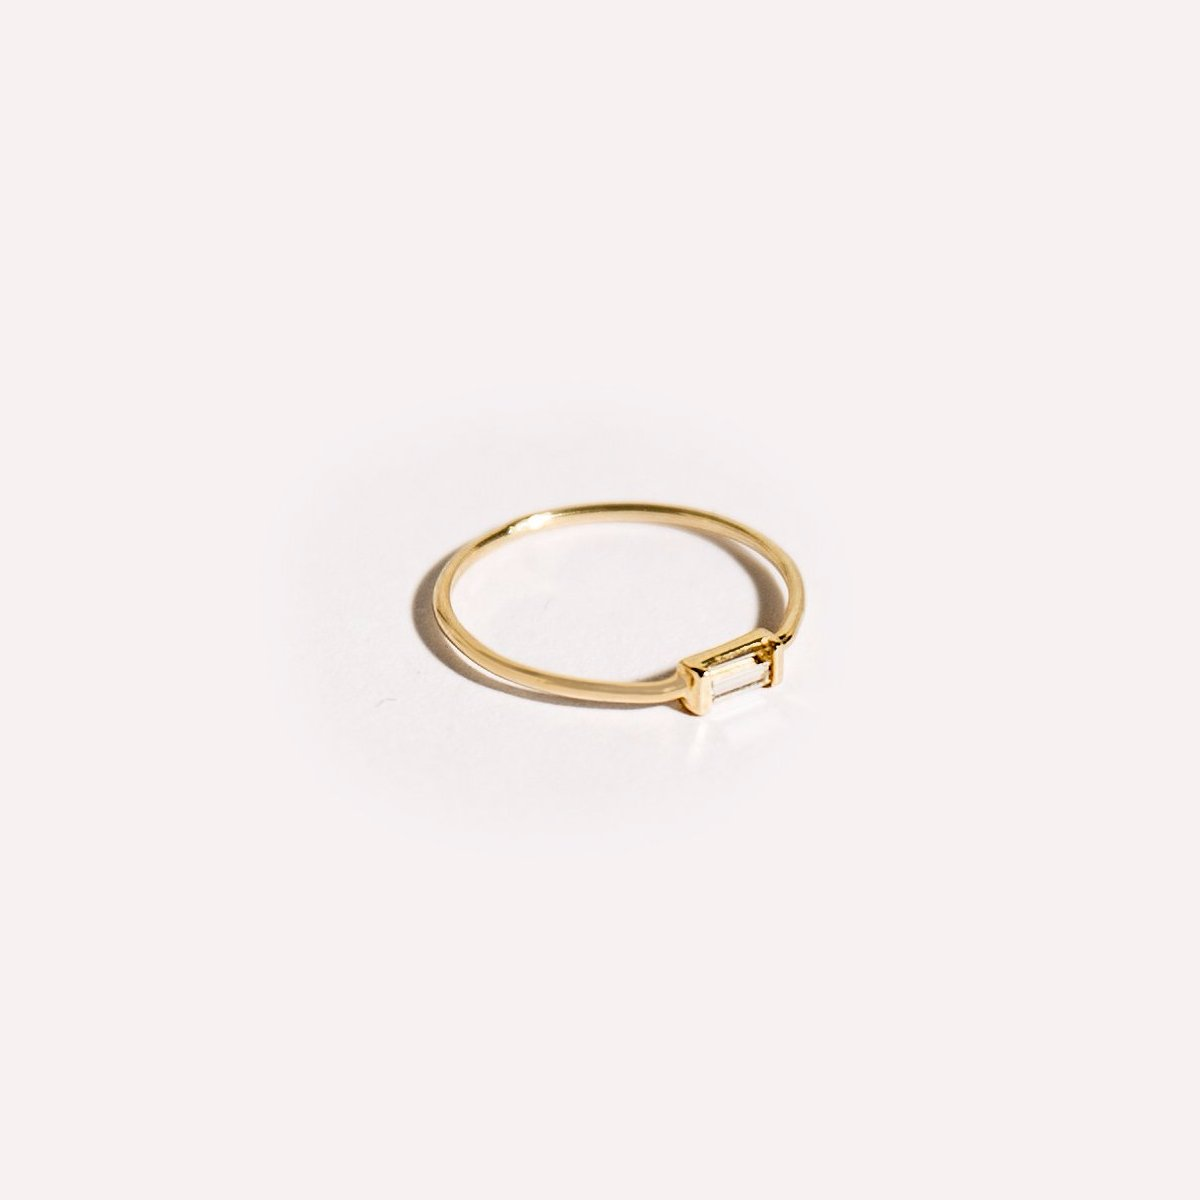 jewelers black dog designer stil product novo gold online jewellery rings ring